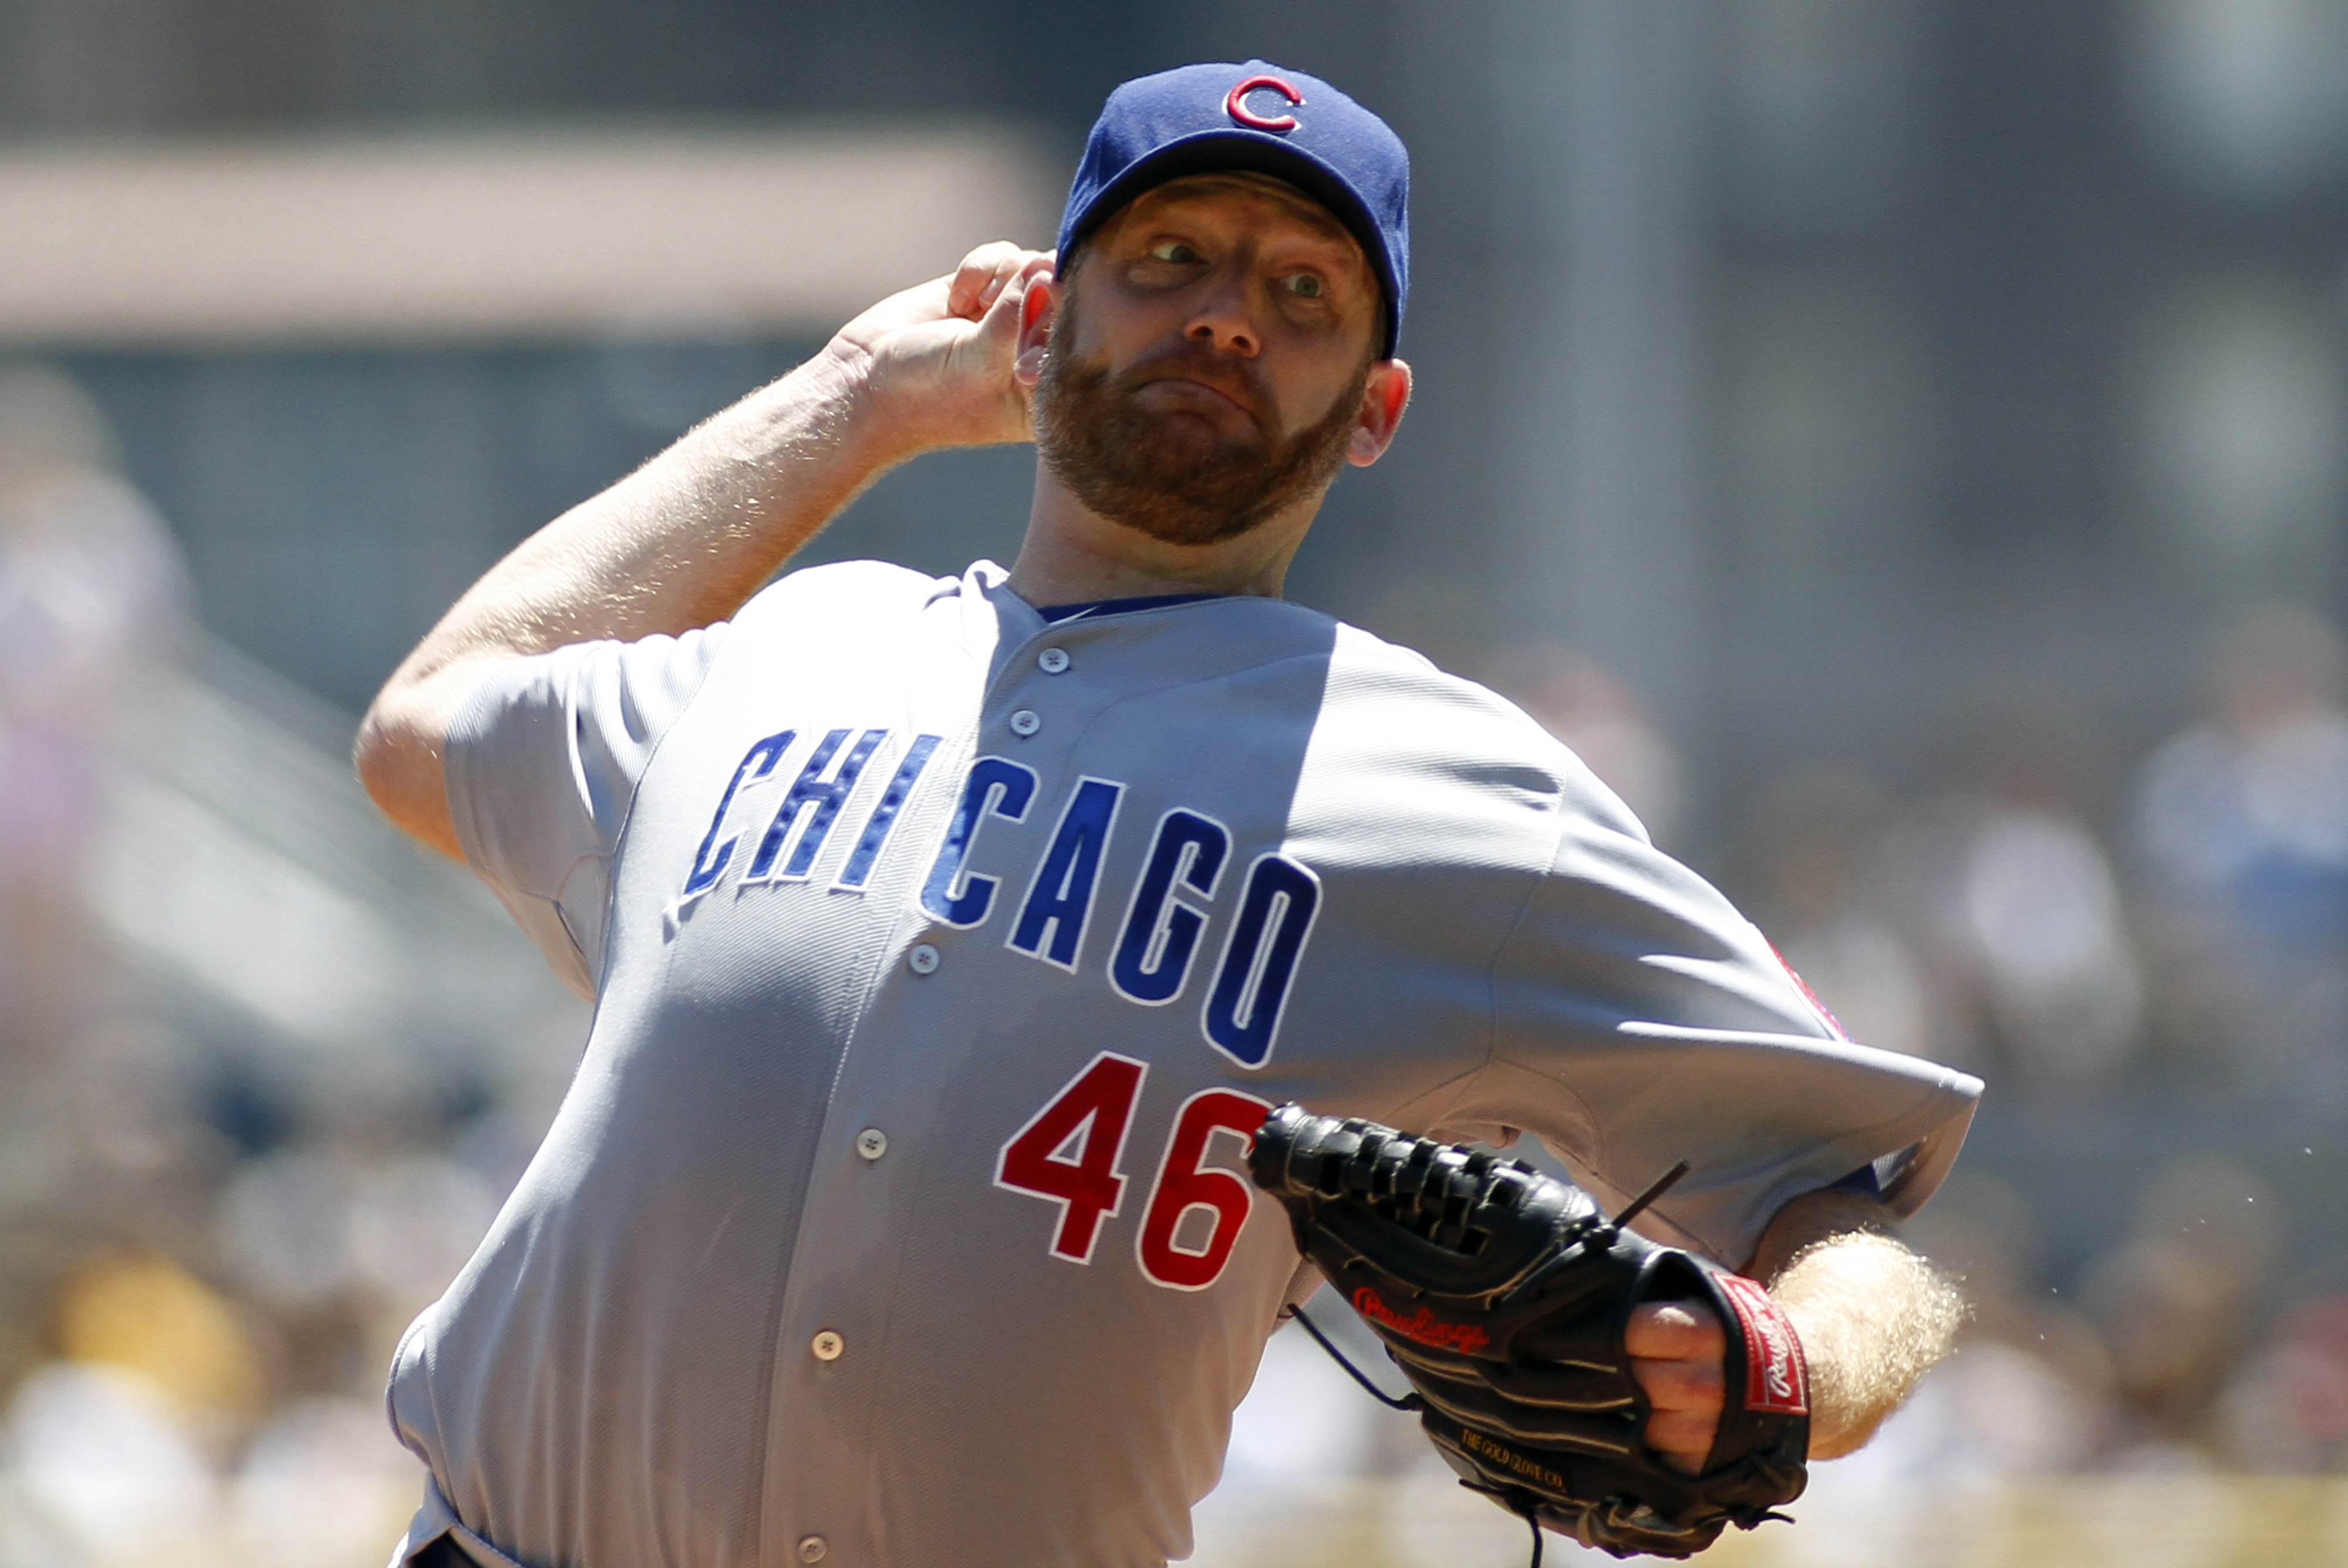 PITTSBURGH, PA - JULY 25: Ryan Dempster #46 of the Chicago Cubs pitches against the Pittsburgh Pirates on July 25, 2012 at PNC Park in Pittsburgh, Pennsylvania.(Photo by Justin K. Aller/Getty Images)